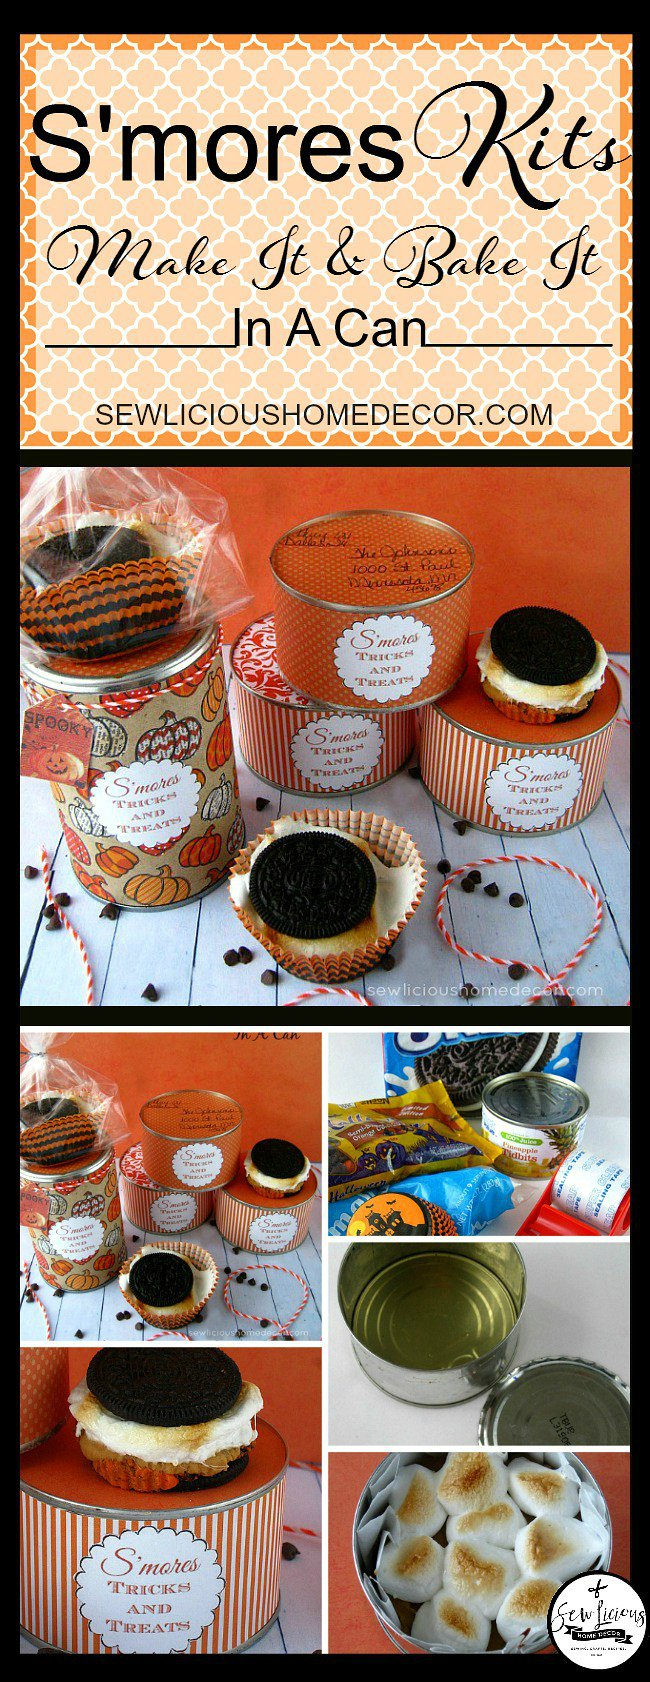 S'mores Kits In A Can. Make it and Bake it then wrap it up. sewlicioushomedecor.com